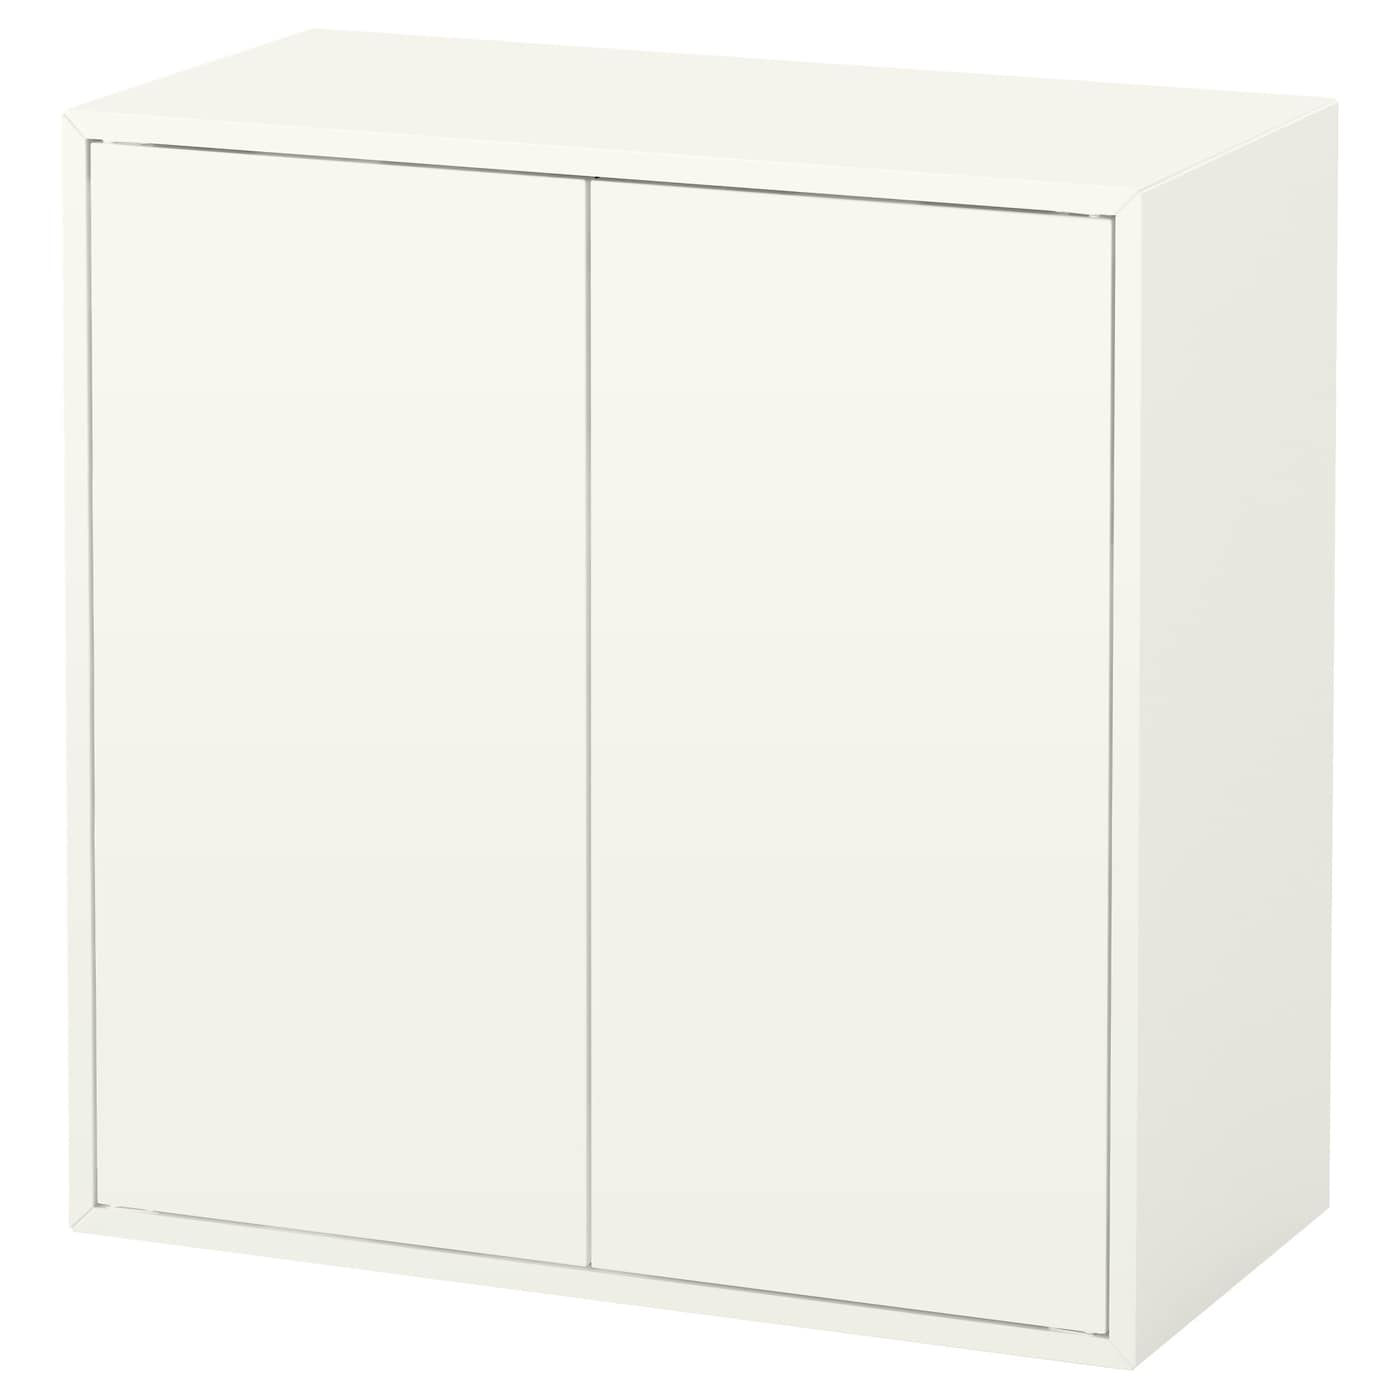 Eket cabinet w 2 doors and 1 shelf white 70x35x70 cm ikea for Kommode 100 x 60